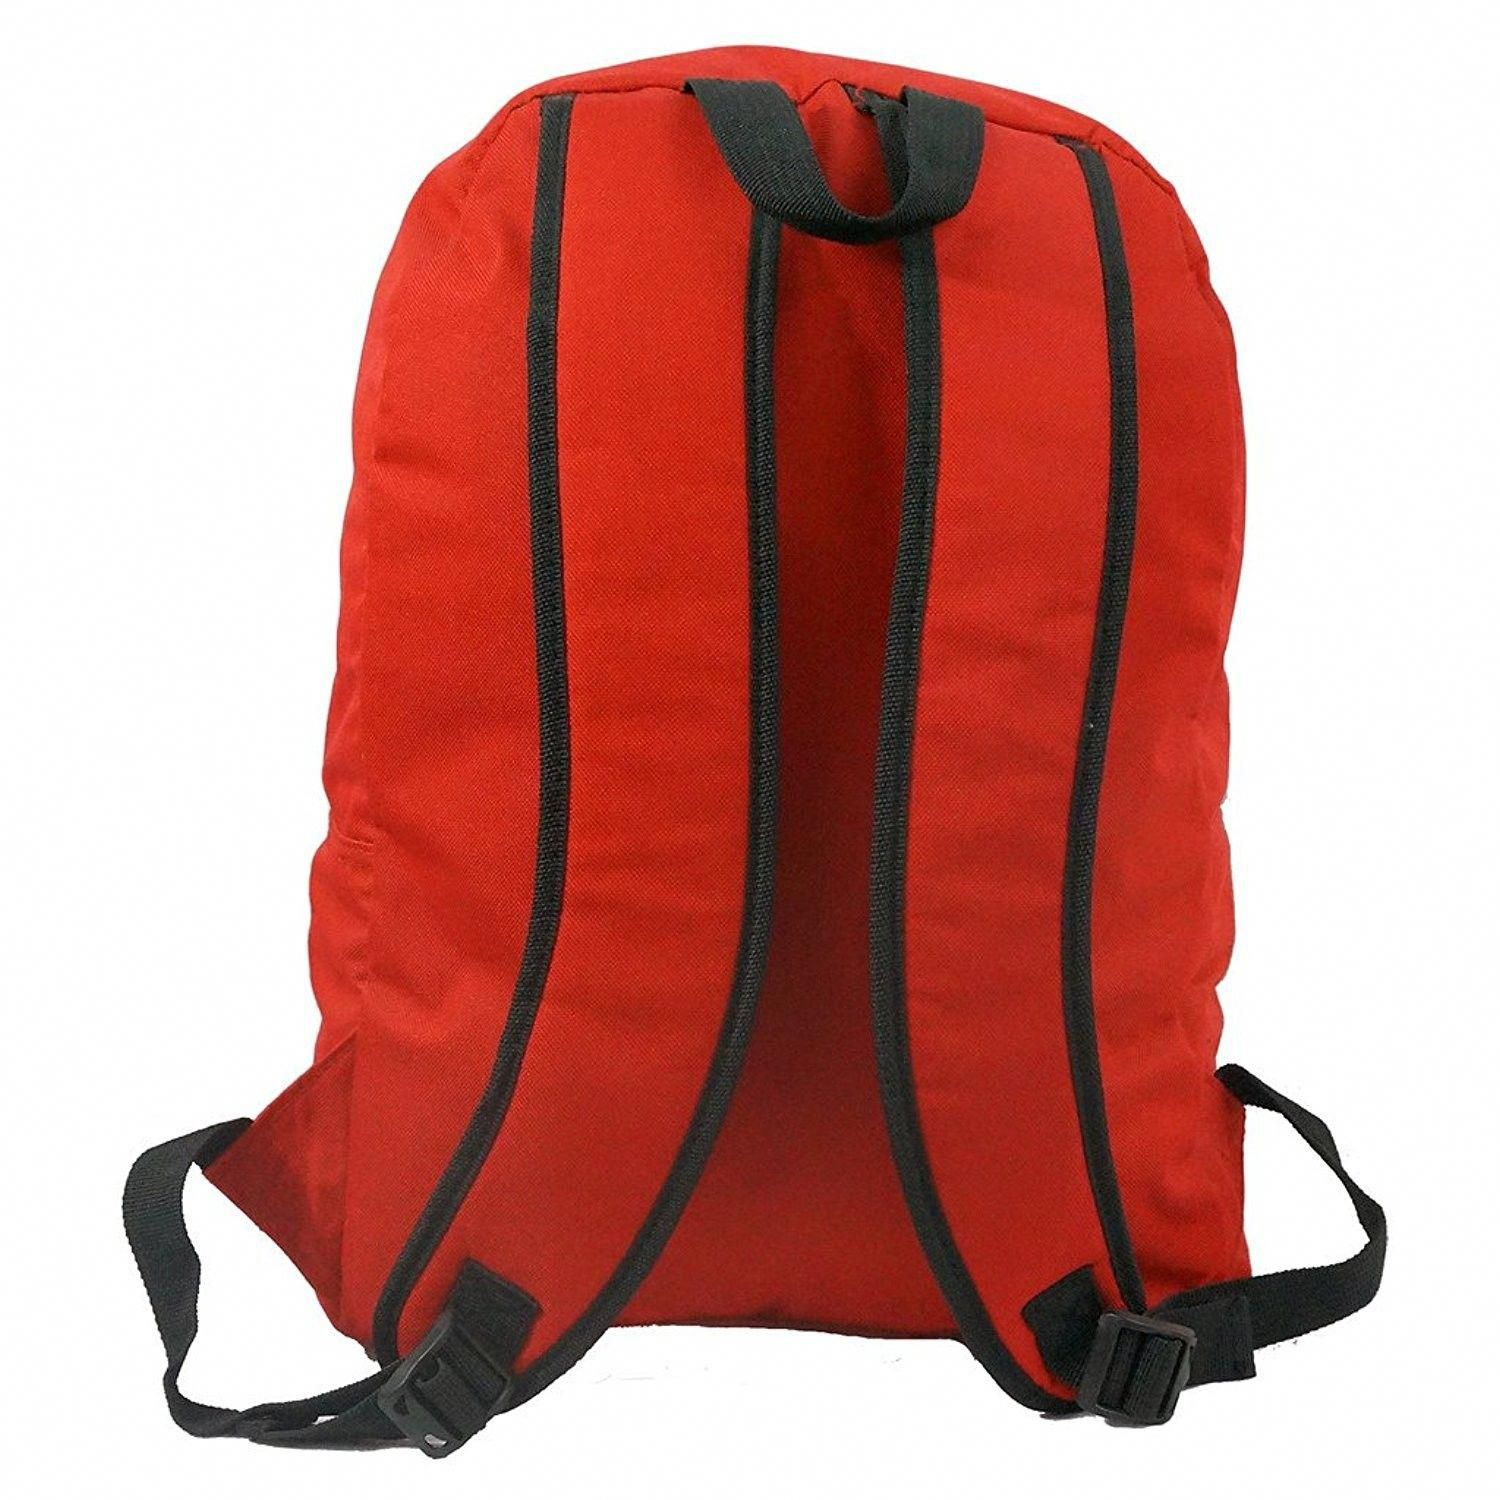 4ce1450e6868 Basic Emergency Survival Backpack Classic Simple School Book Bag Student  Daily Daypack 18 Inch - Red - CZ12CNZMW07 - Men s Bags